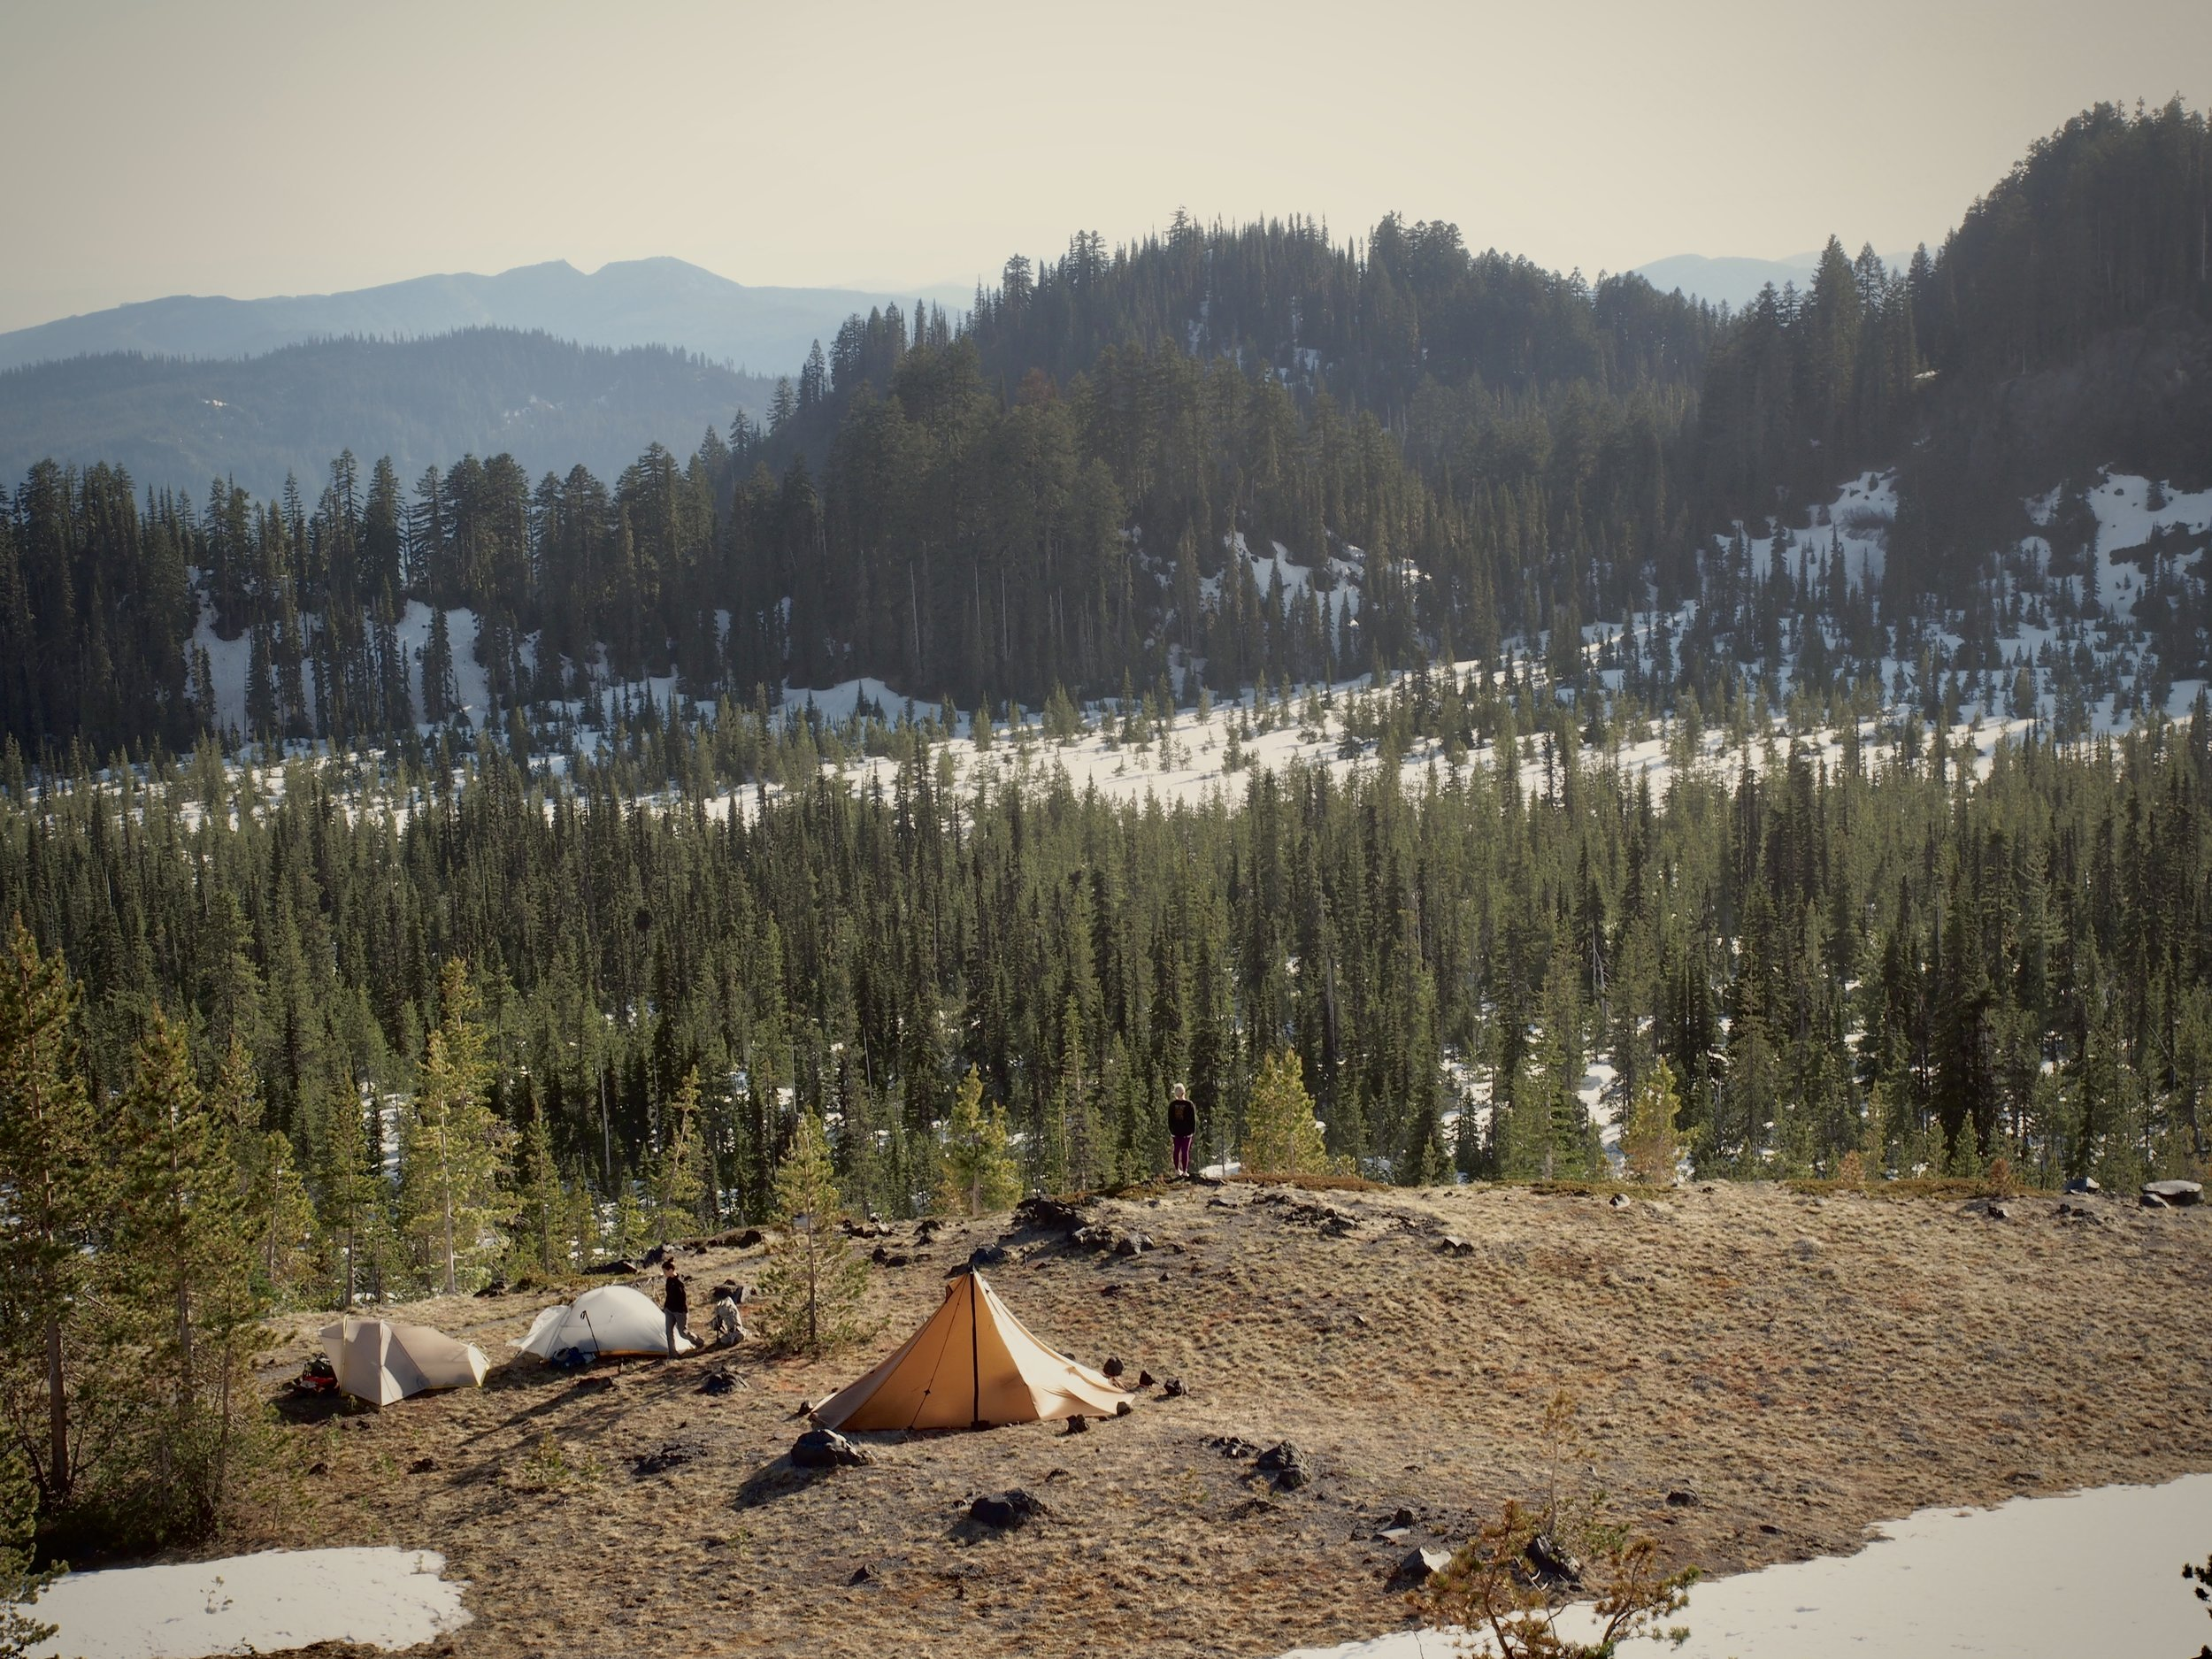 Home away from home in the backcountry. Check out the Redcliff in comparison to the Sierra Designs Lightning and the Big Agnes Fly Creek.